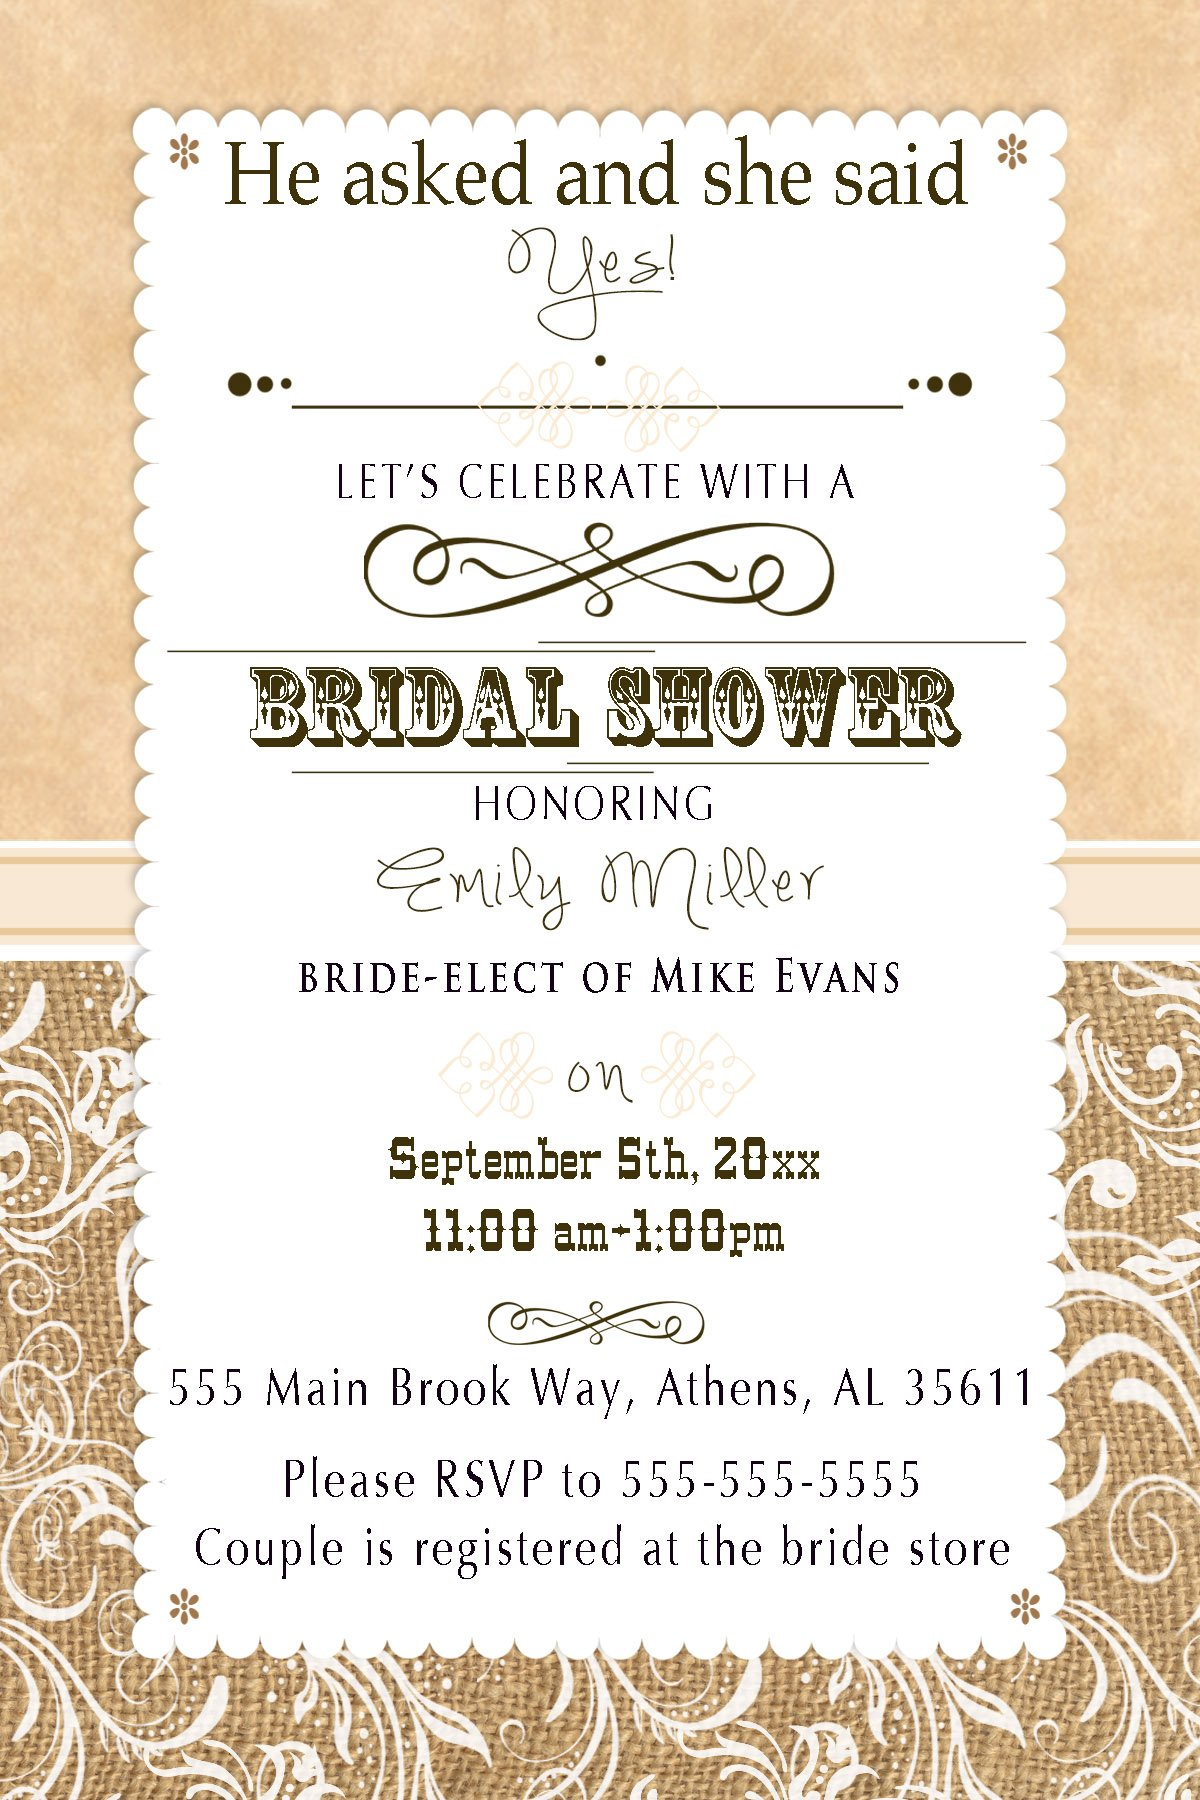 30 Invitations Brown Rustic Country Style Burlap Vintage Design Bridal Shower Party Personalized Cards + 30 White Envelopes